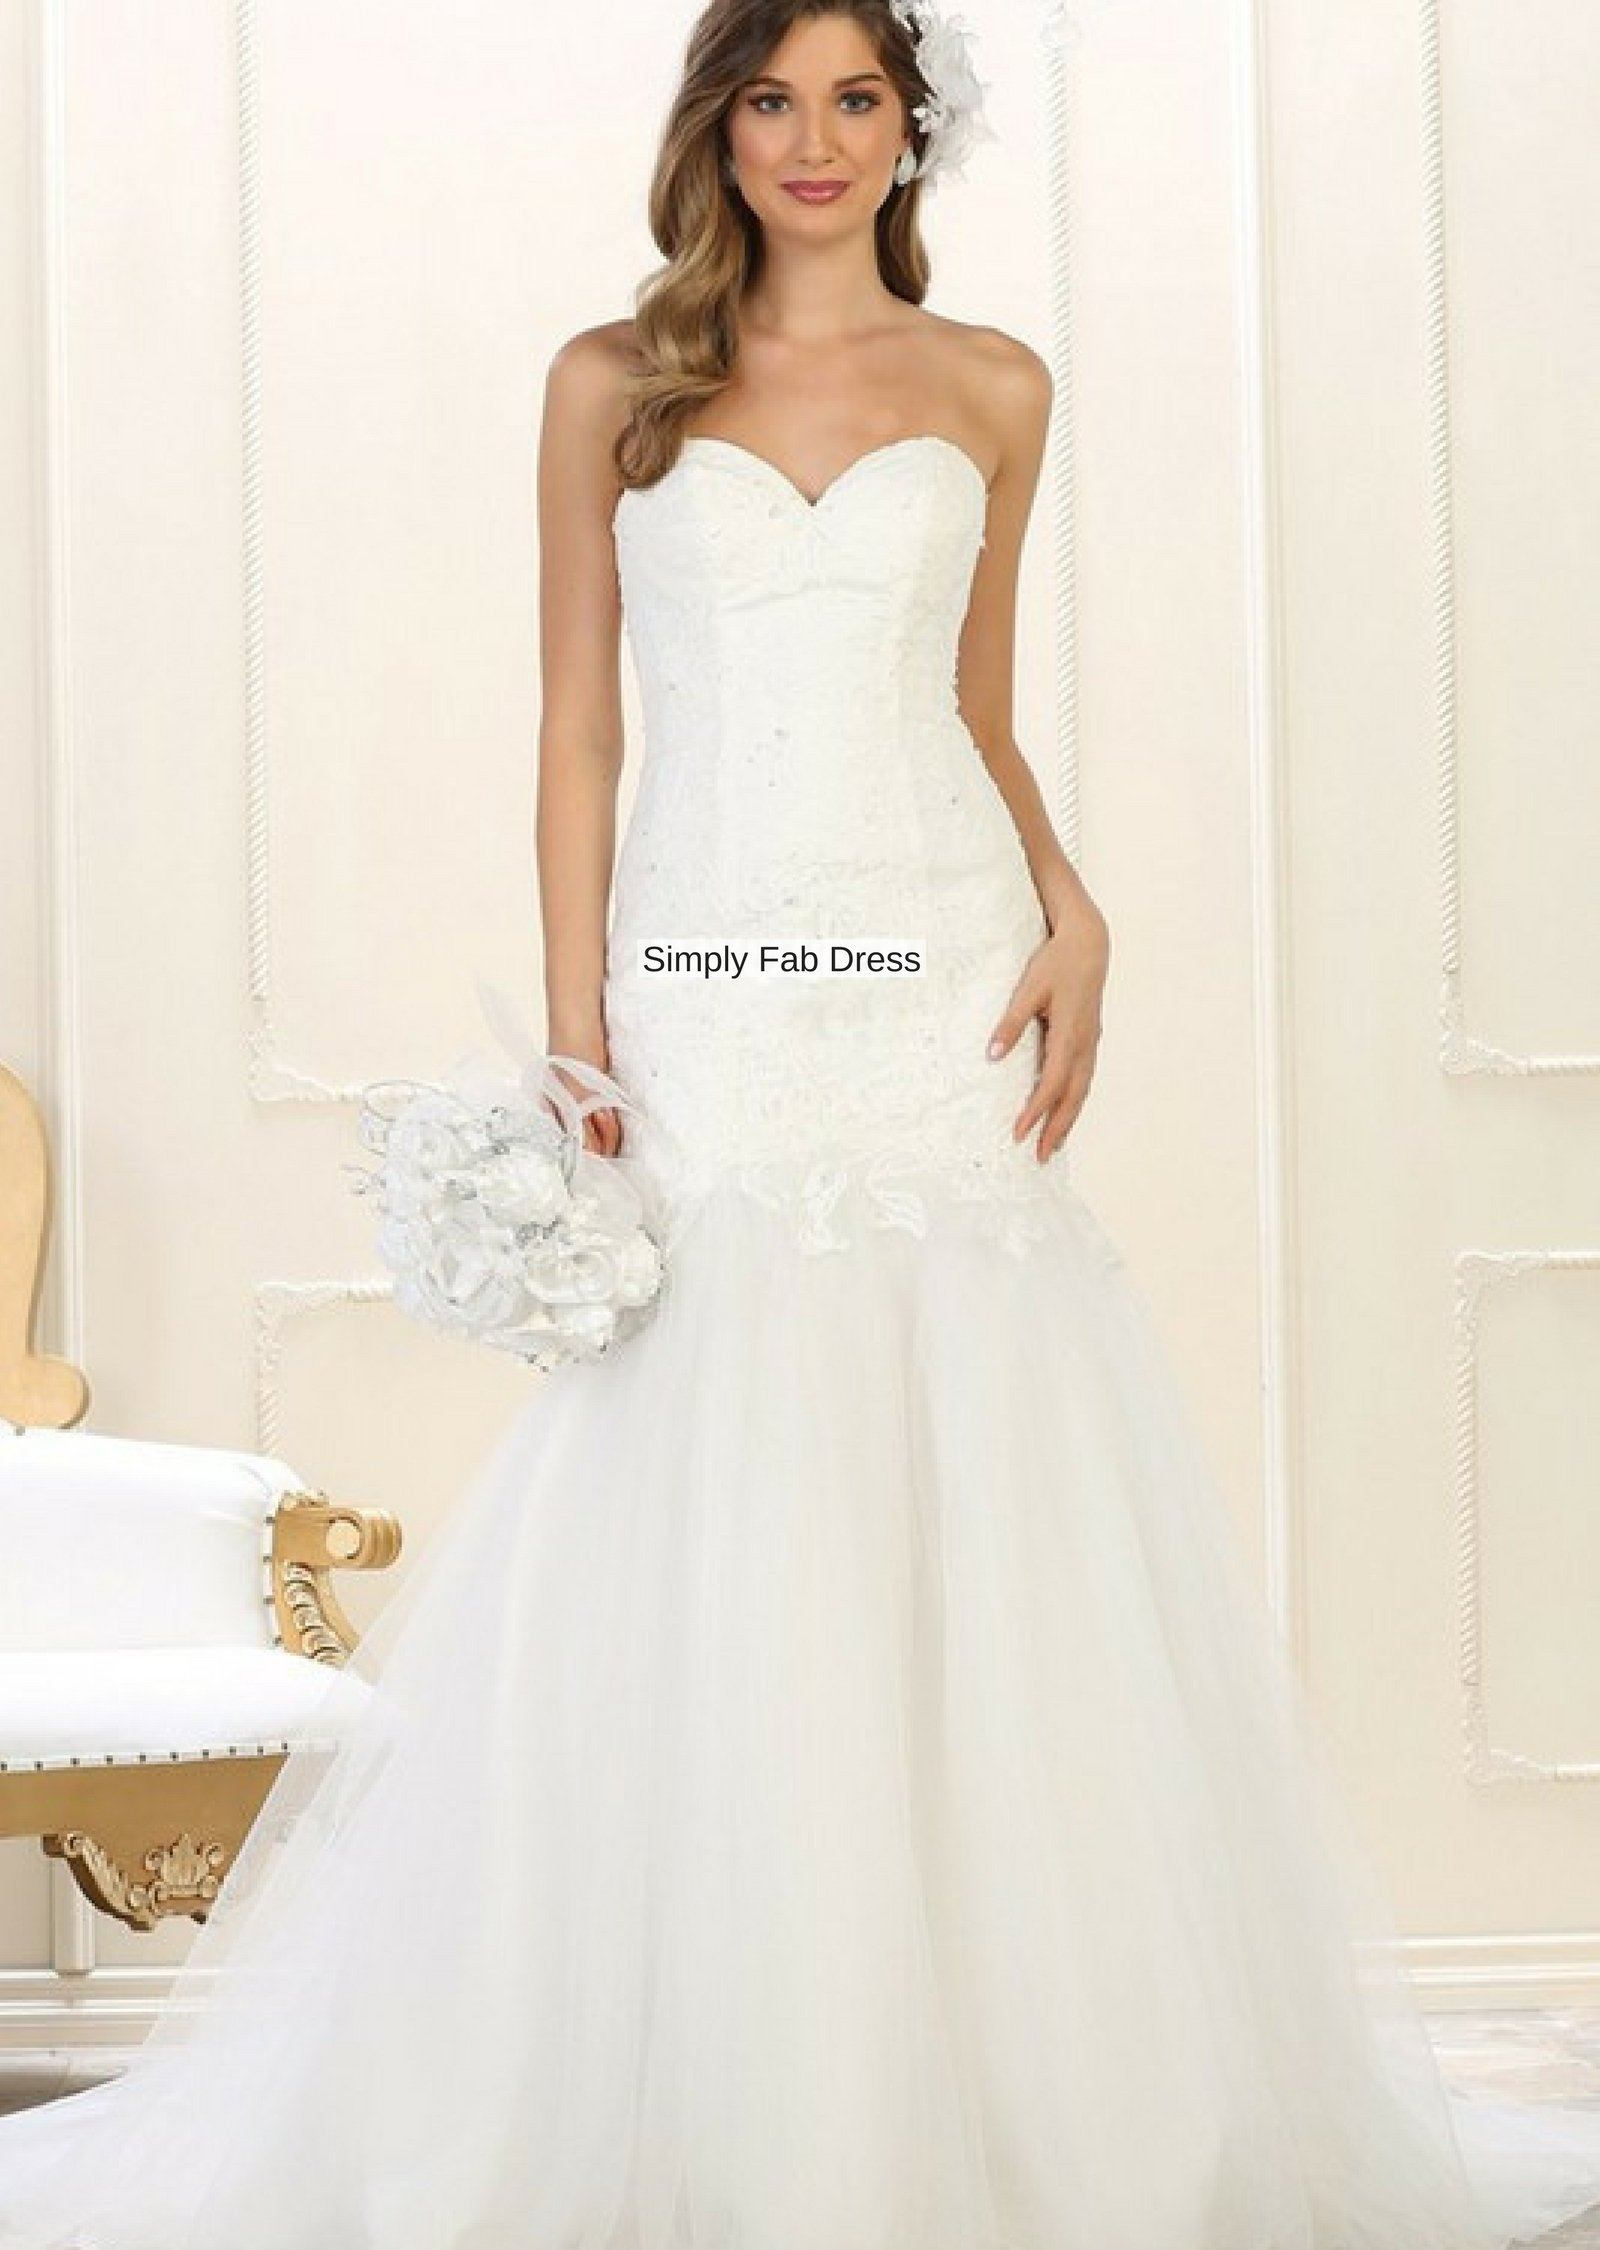 Mermaid trumpet wedding gown rq7600 simply fab dress mermaid trumpet wedding gown rq7600 simply fab dress junglespirit Images